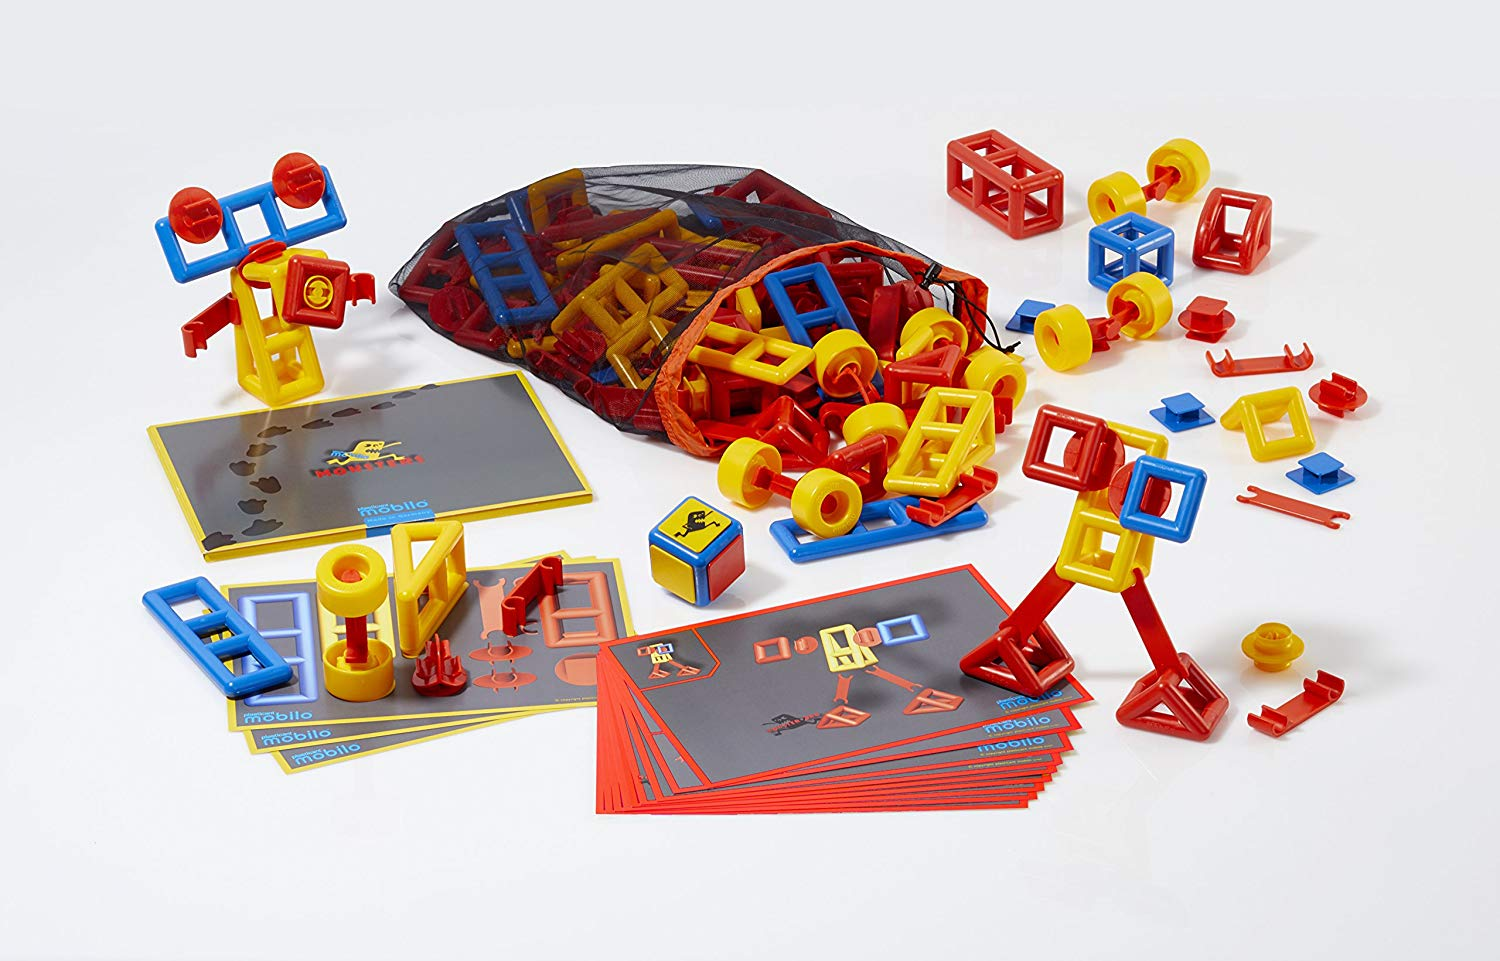 Plasticant Mobilo 270 270-Game Set Monsters, Red, Blue, Yellow